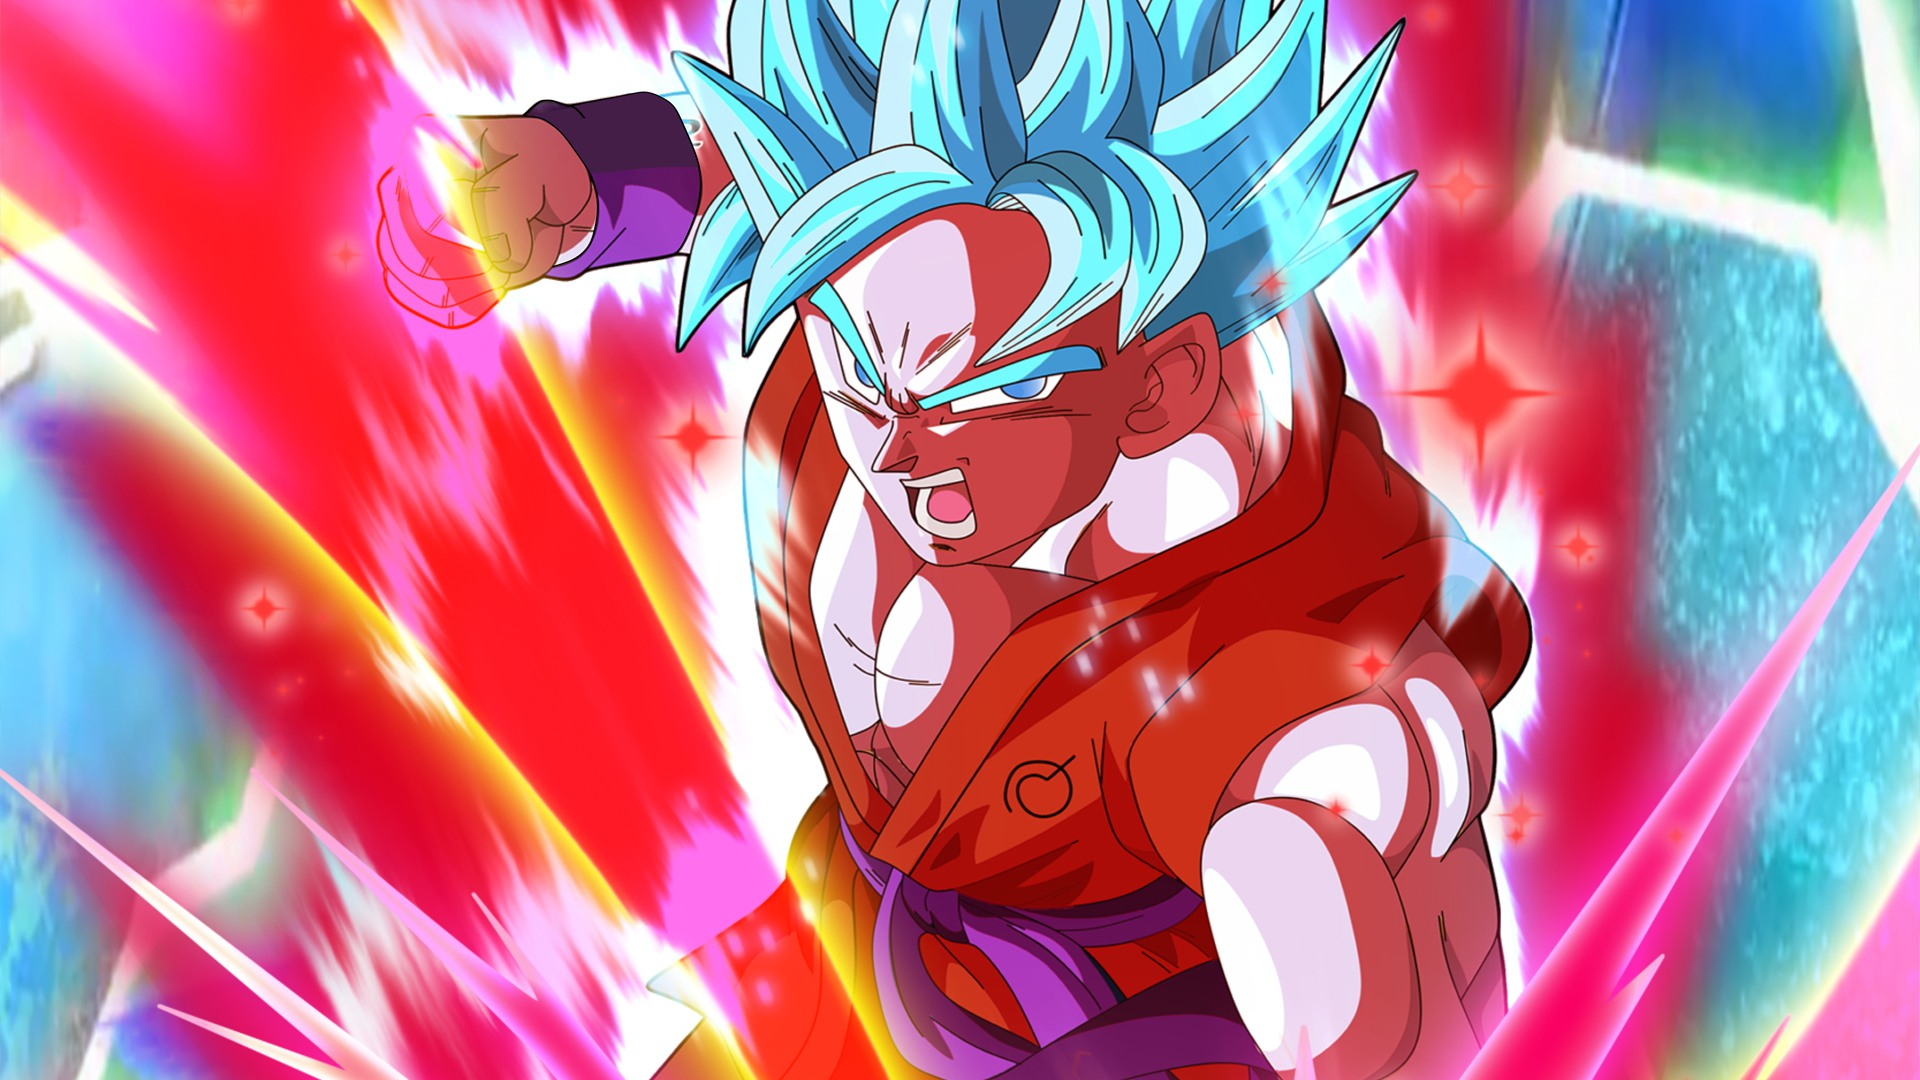 35 Goku Red Wallpapers On Wallpapersafari